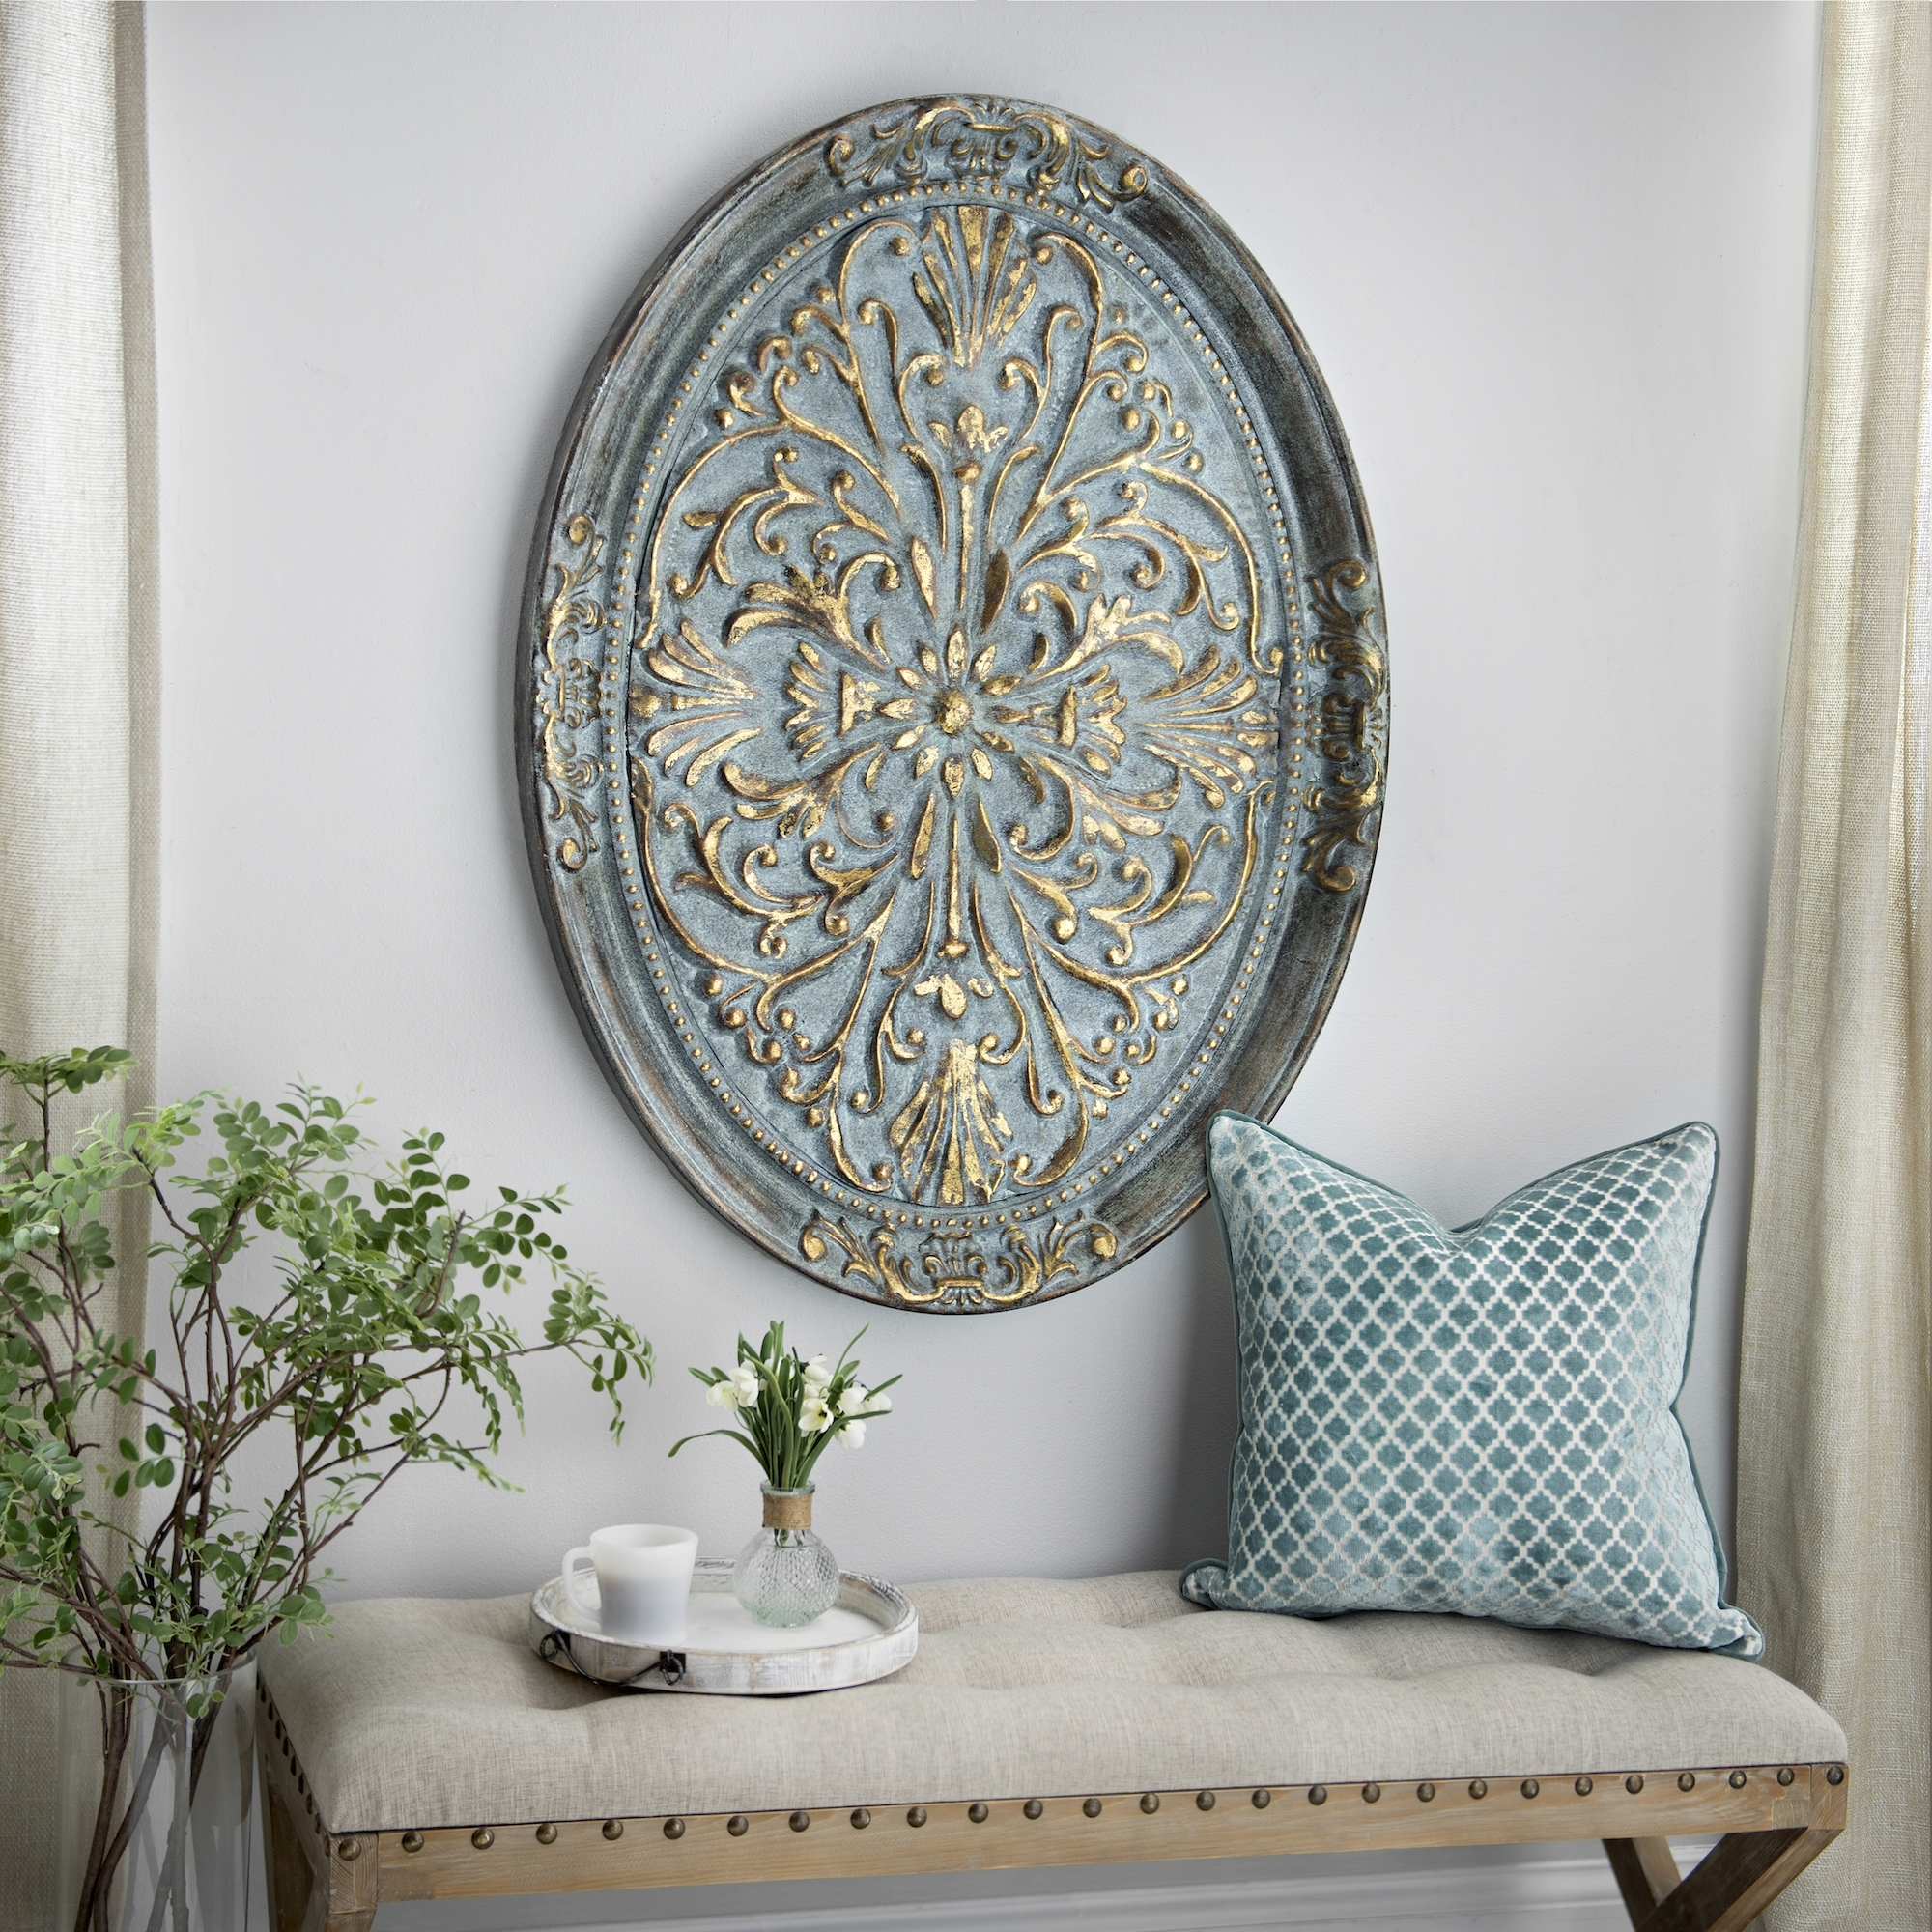 Decor: Round Kirklands Wall Art Metal In Grey With Decorative Throughout 2018 Kirklands Wall Art (View 5 of 15)